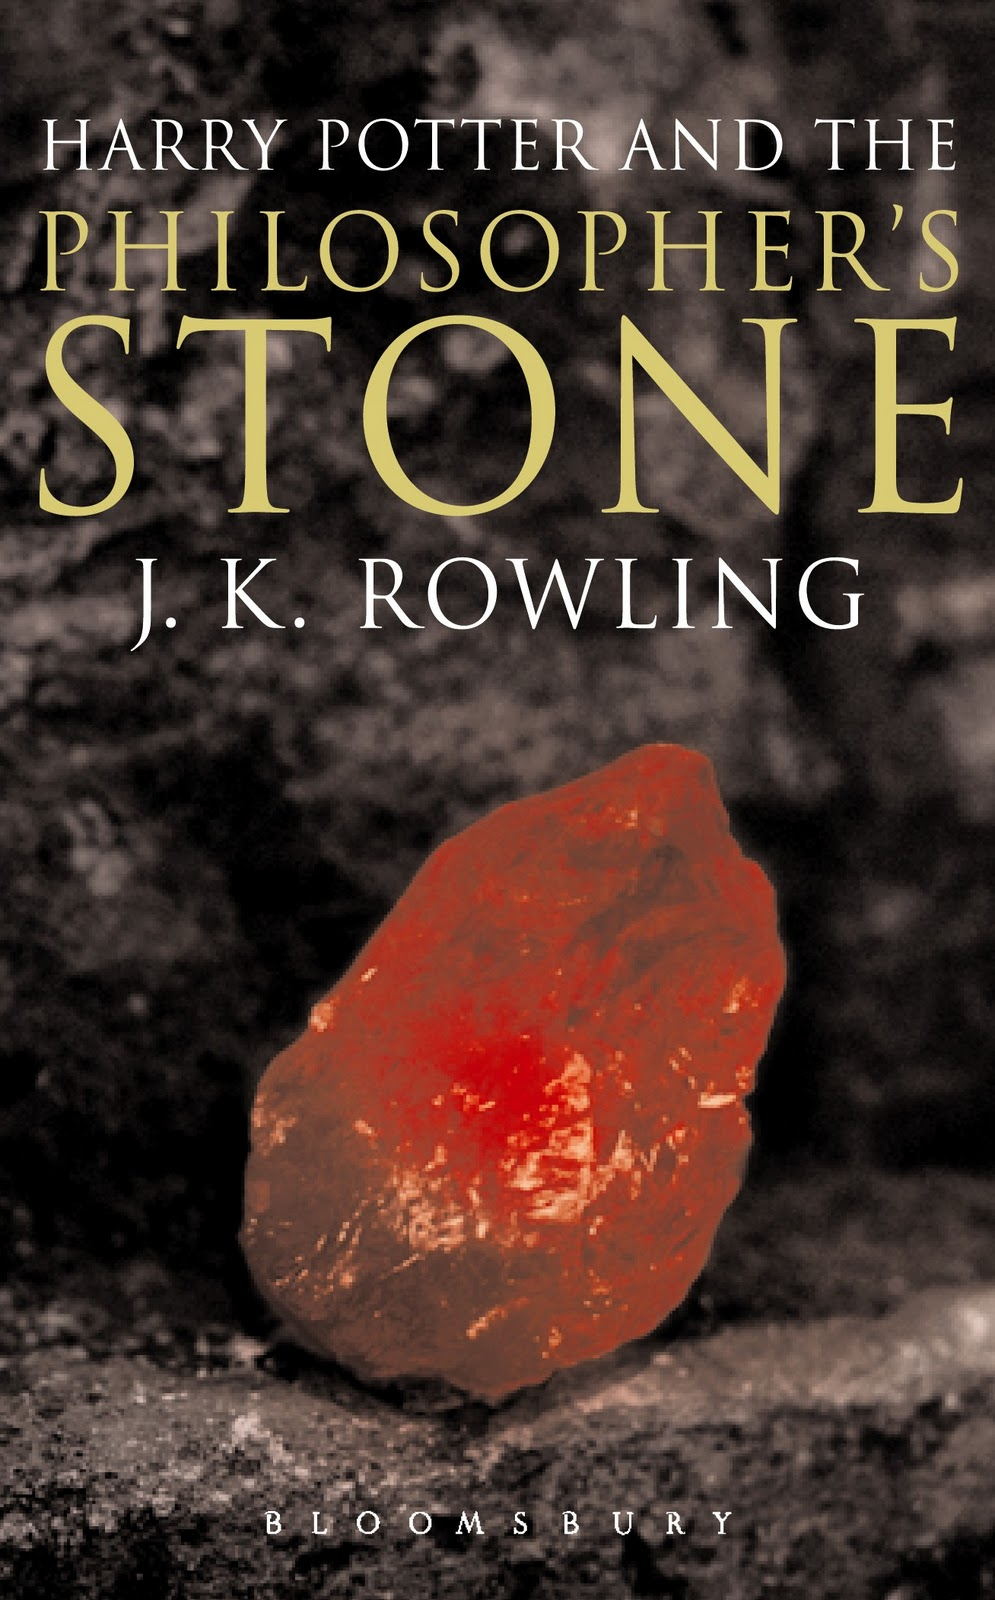 a case of good versus evil in j k rowlings harry potter and the sorcerers stone Get an answer for 'what literary techniques does jk rowling use in harry potter and the sorcerer's stone' and find elements of good vs evil.